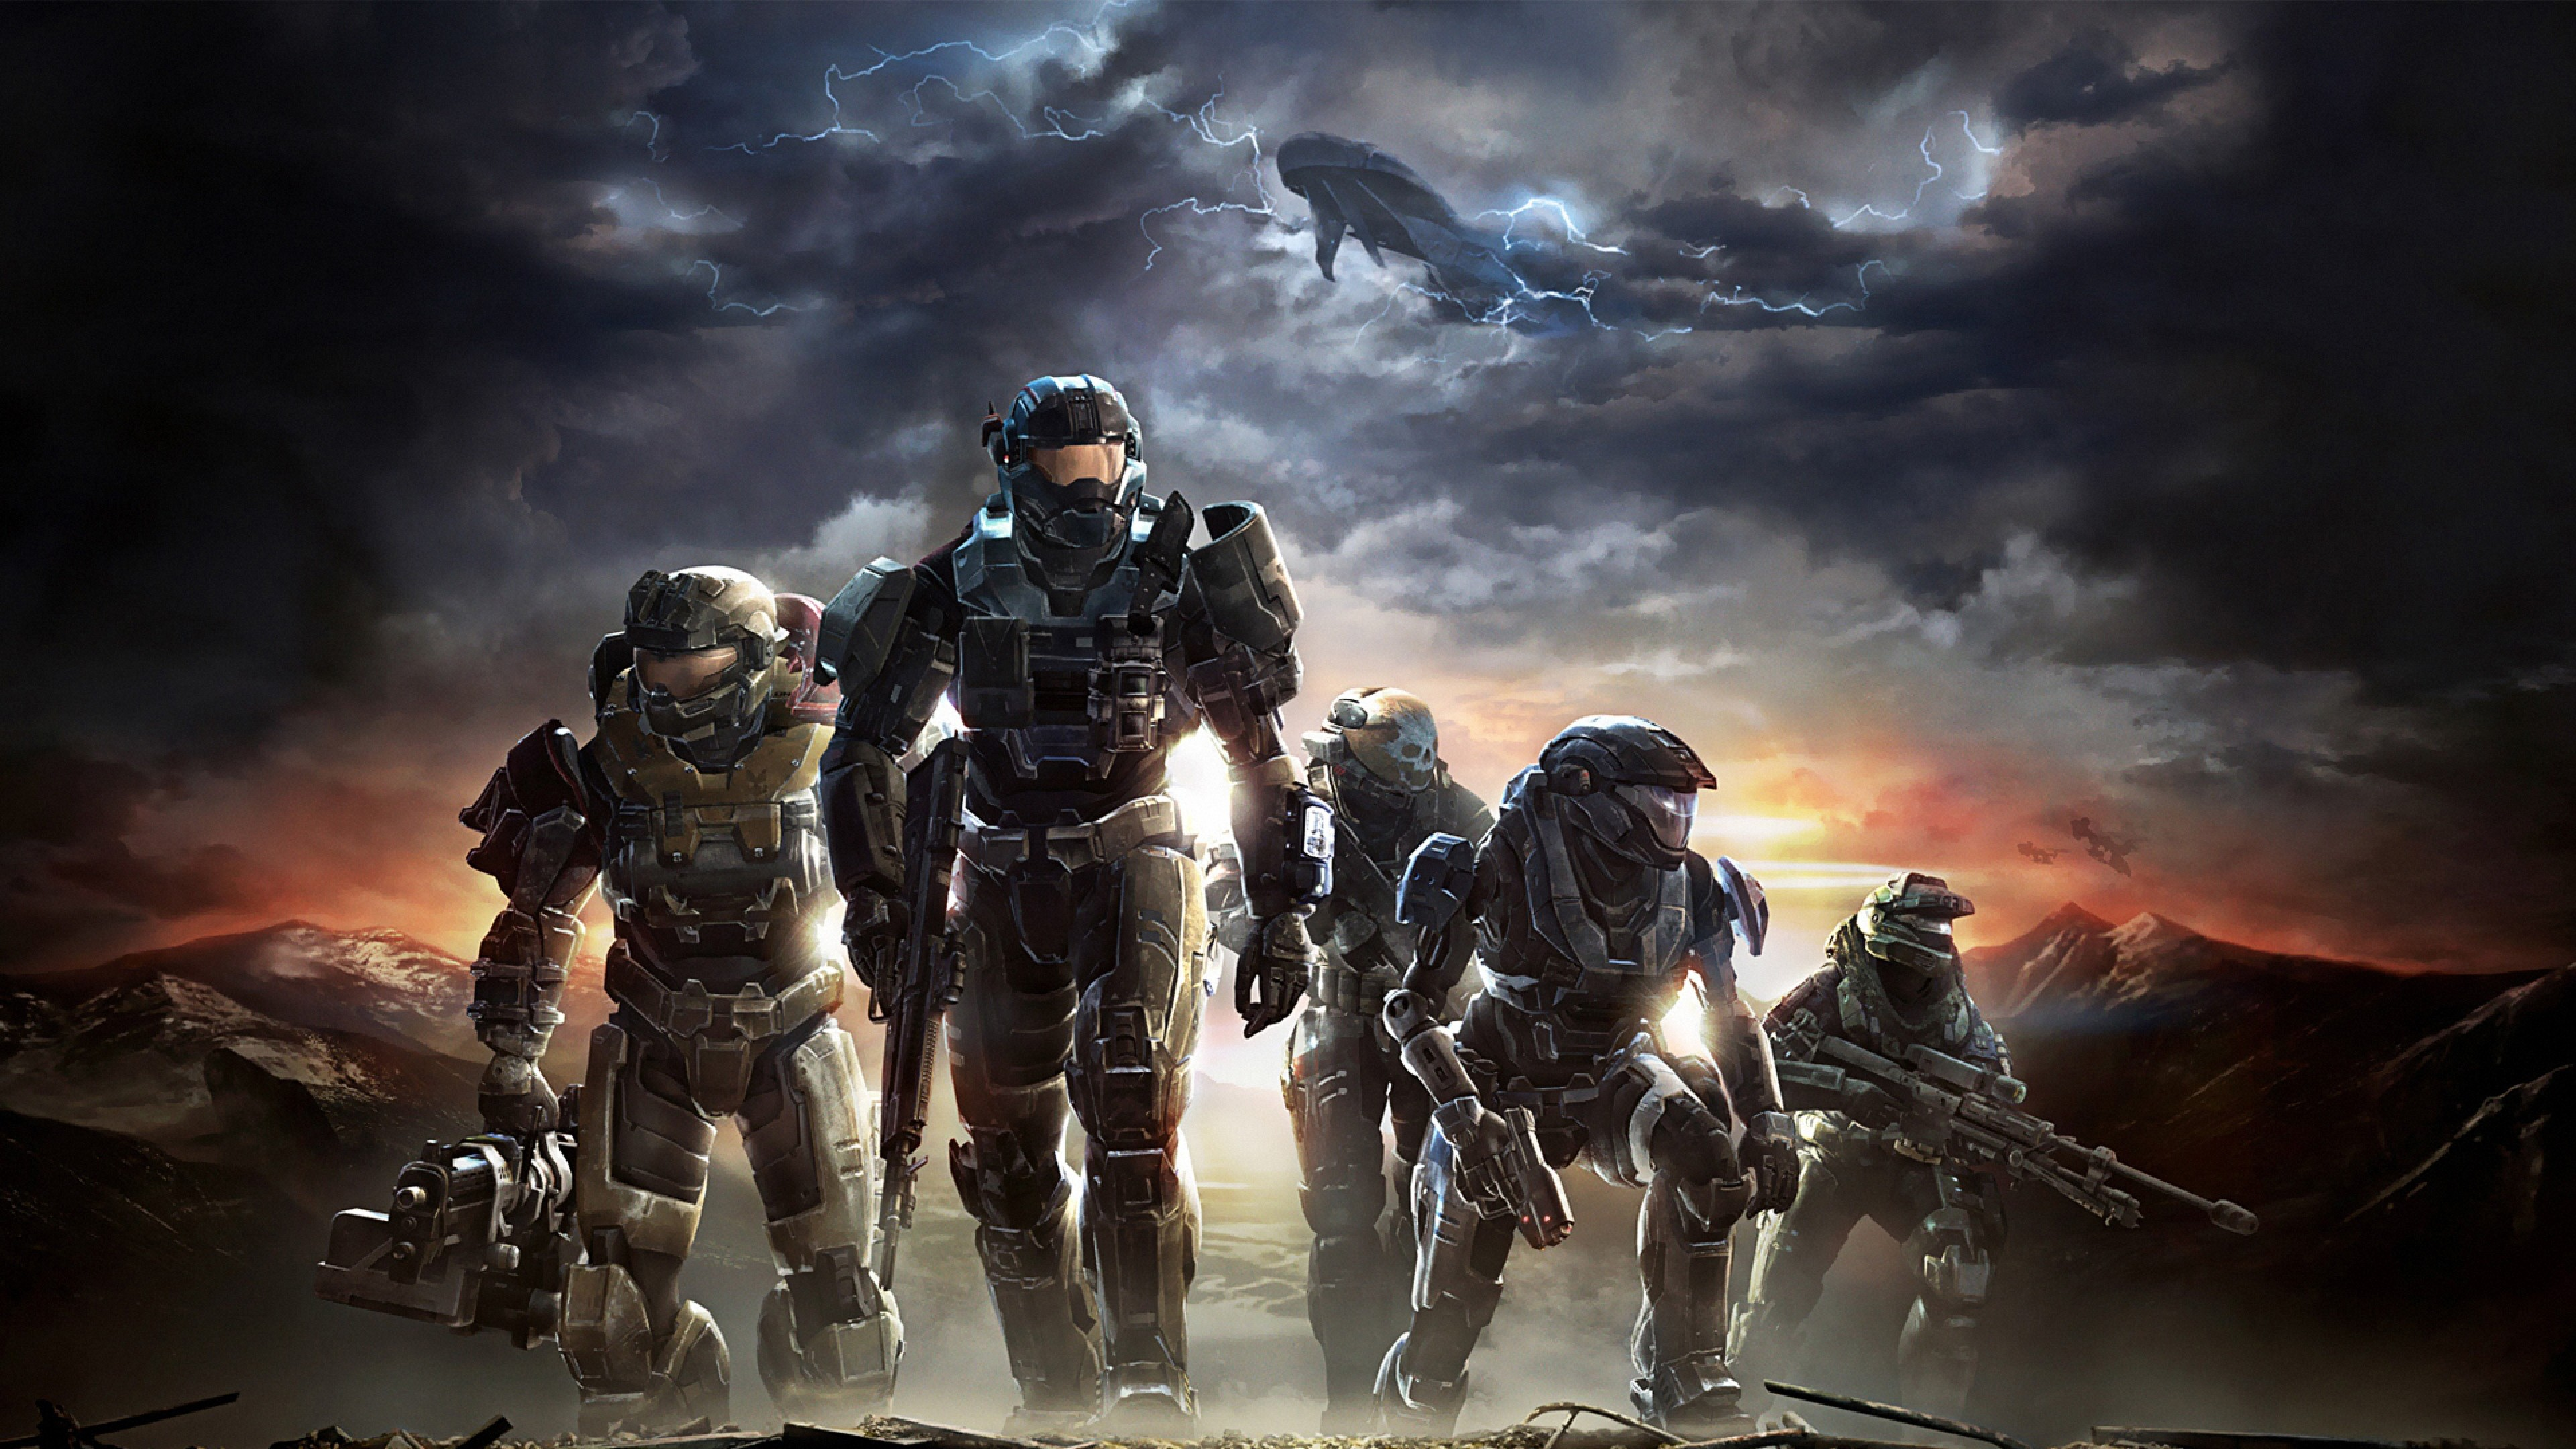 Download Wallpaper halo, soldiers, sky, clouds, mountains 4K .